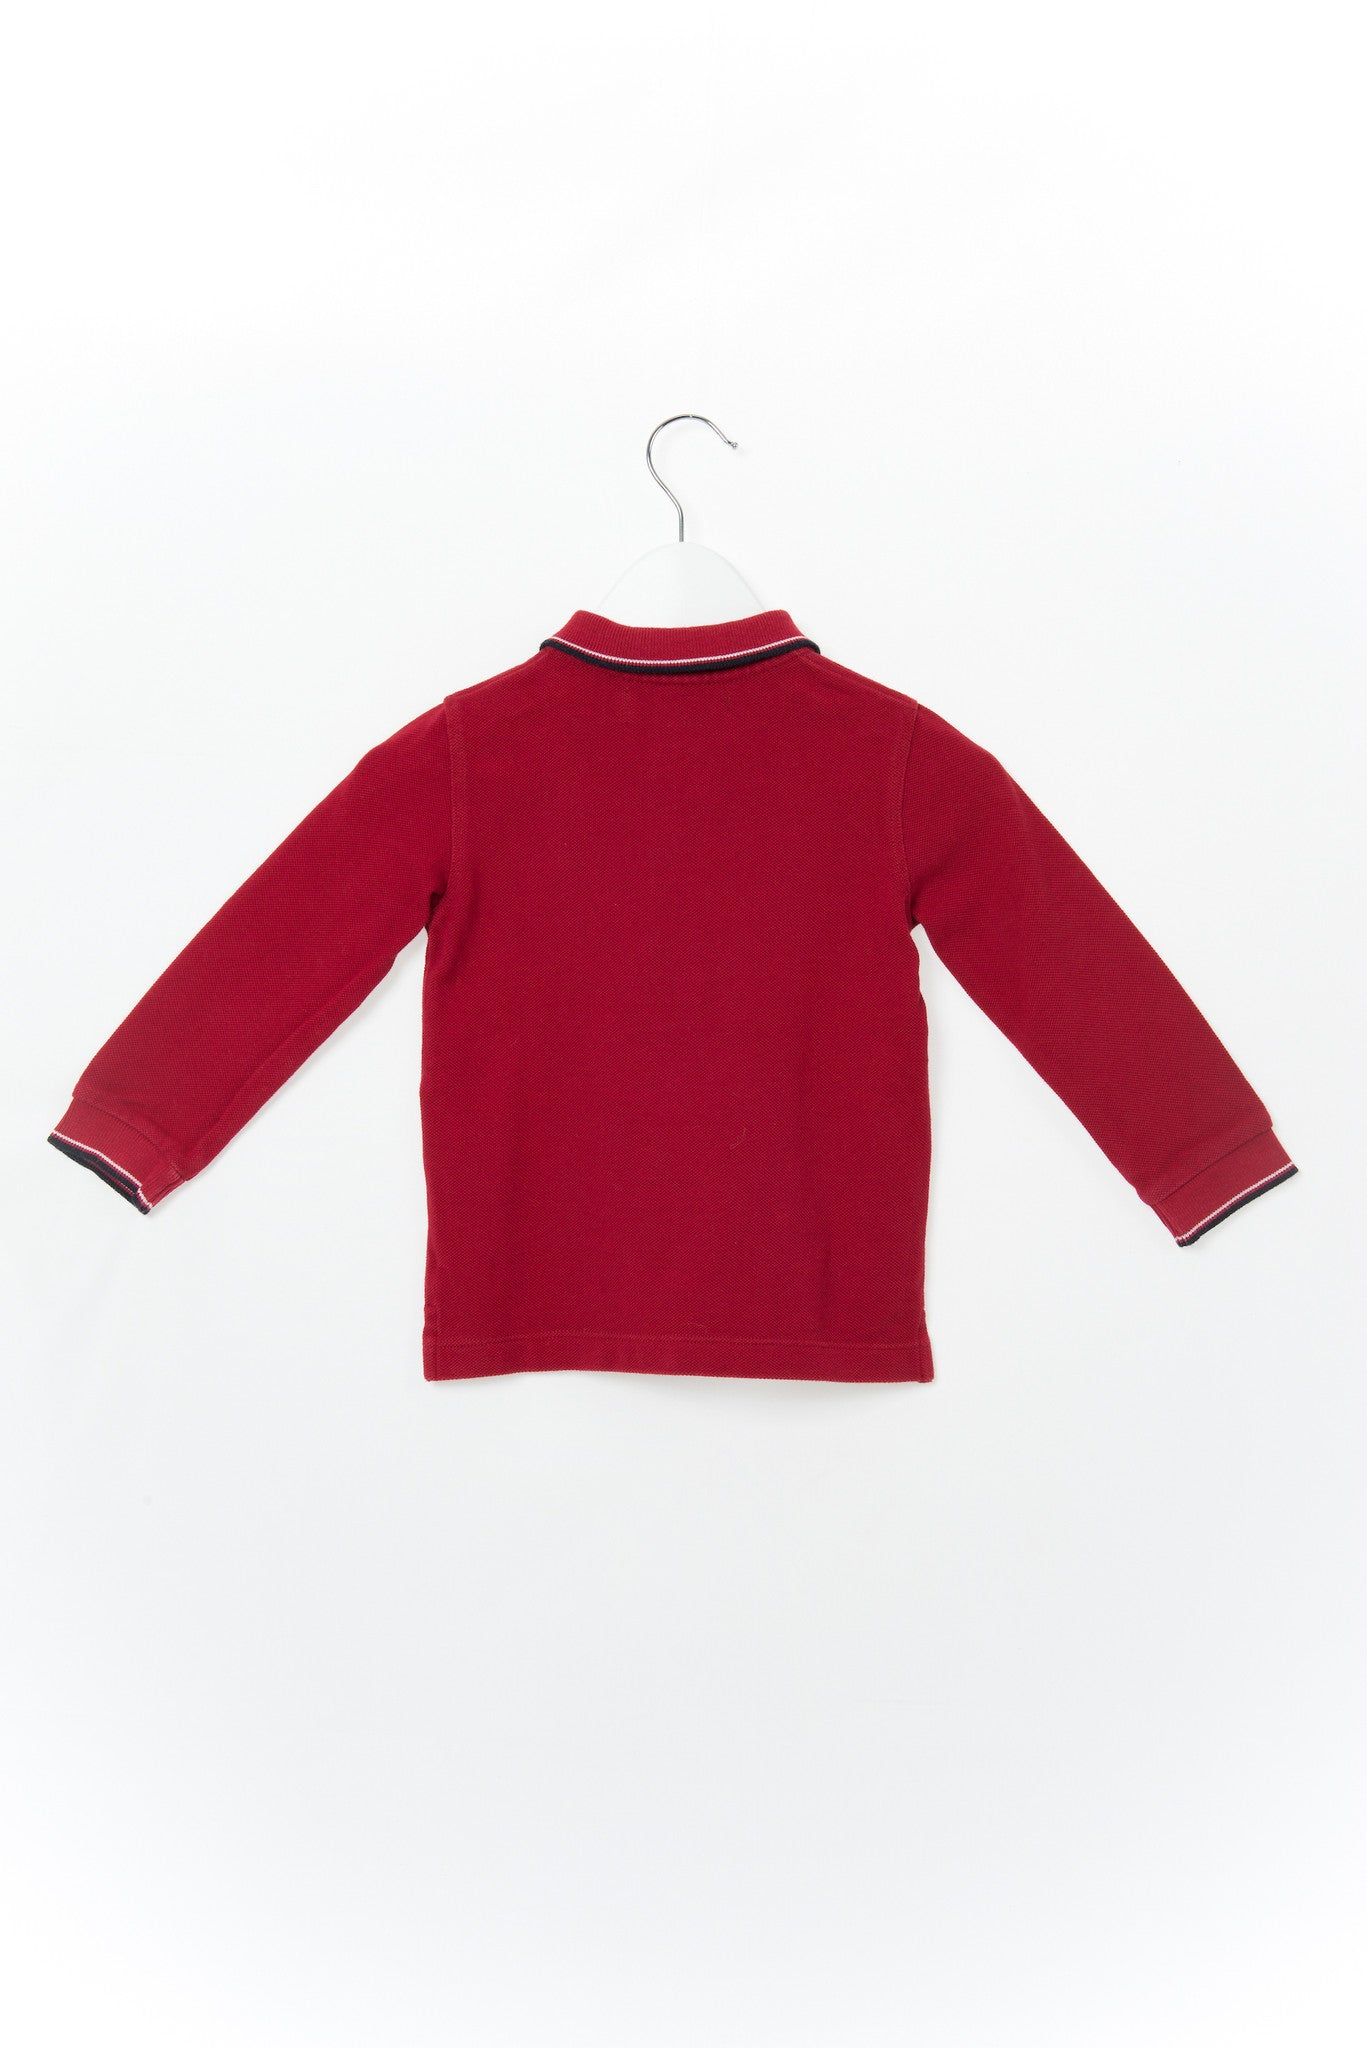 10001284 Petit Bateau Kids~Polo 2T at Retykle